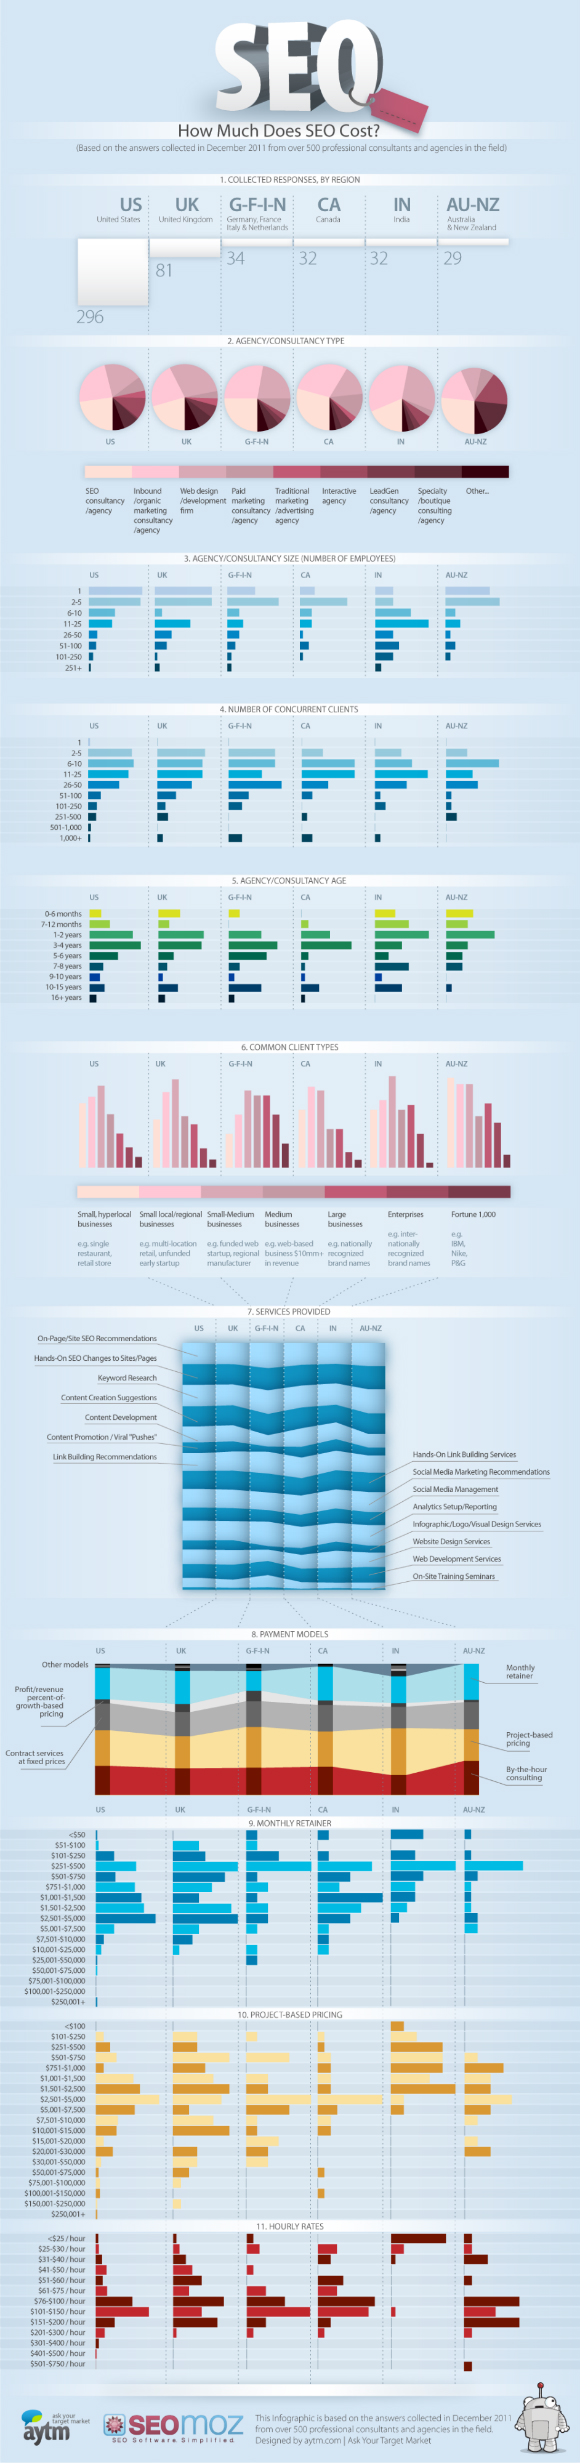 Cost of SEO - December 2011